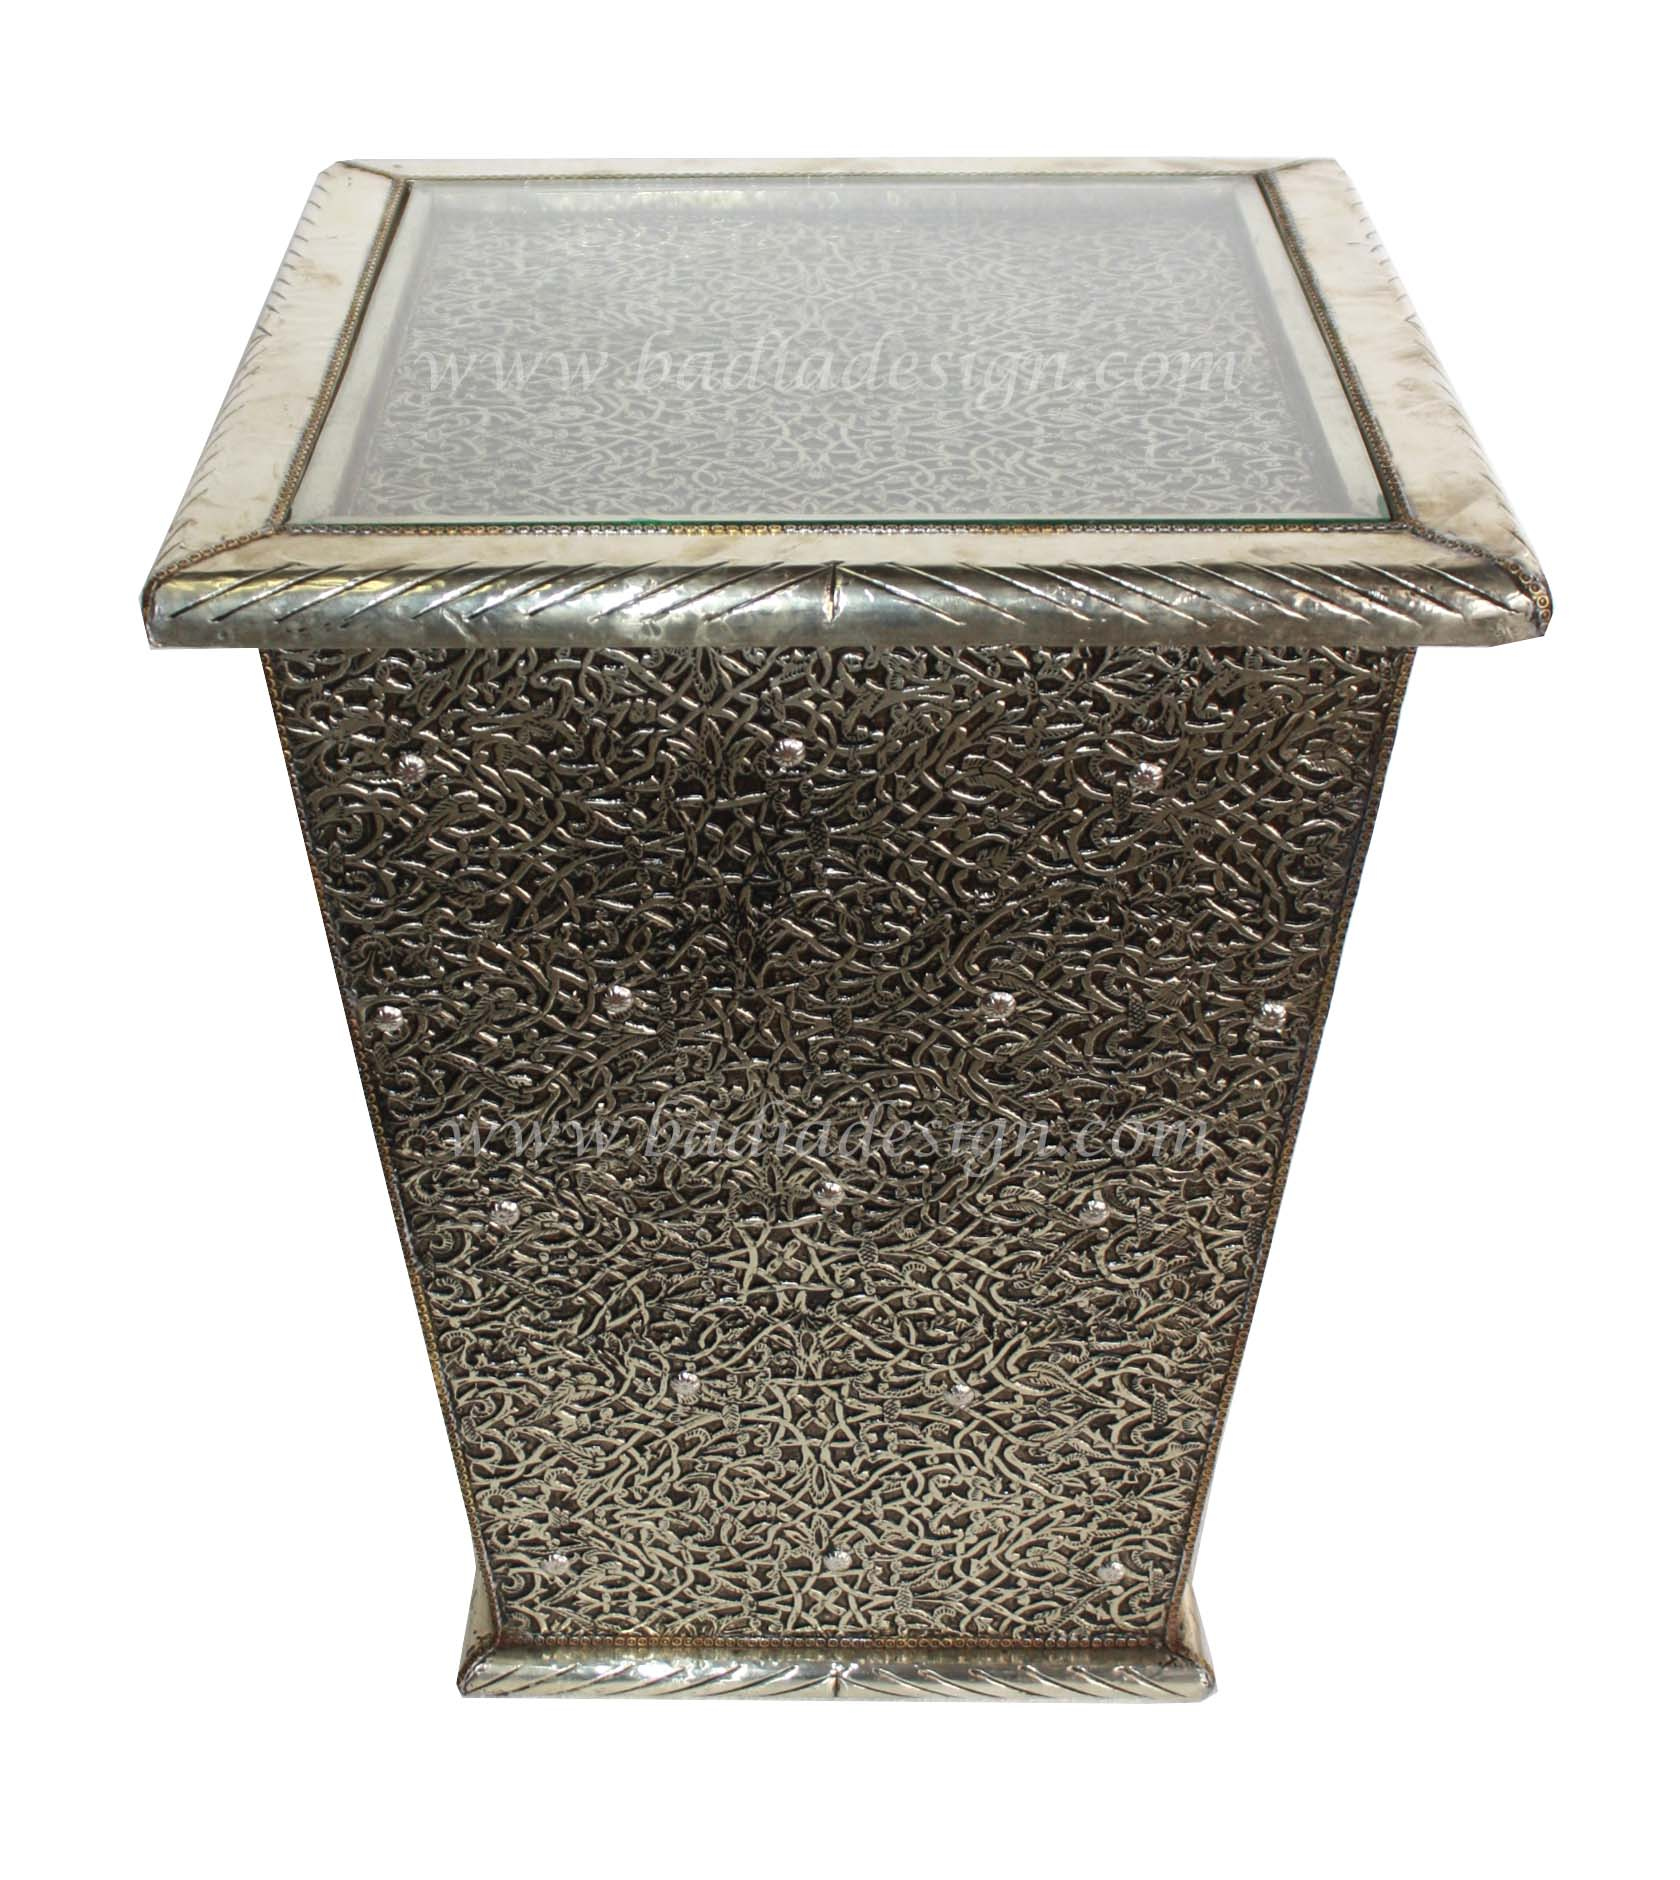 square-moroccan-silver-nickel-side-table-nk-st004-1.jpg